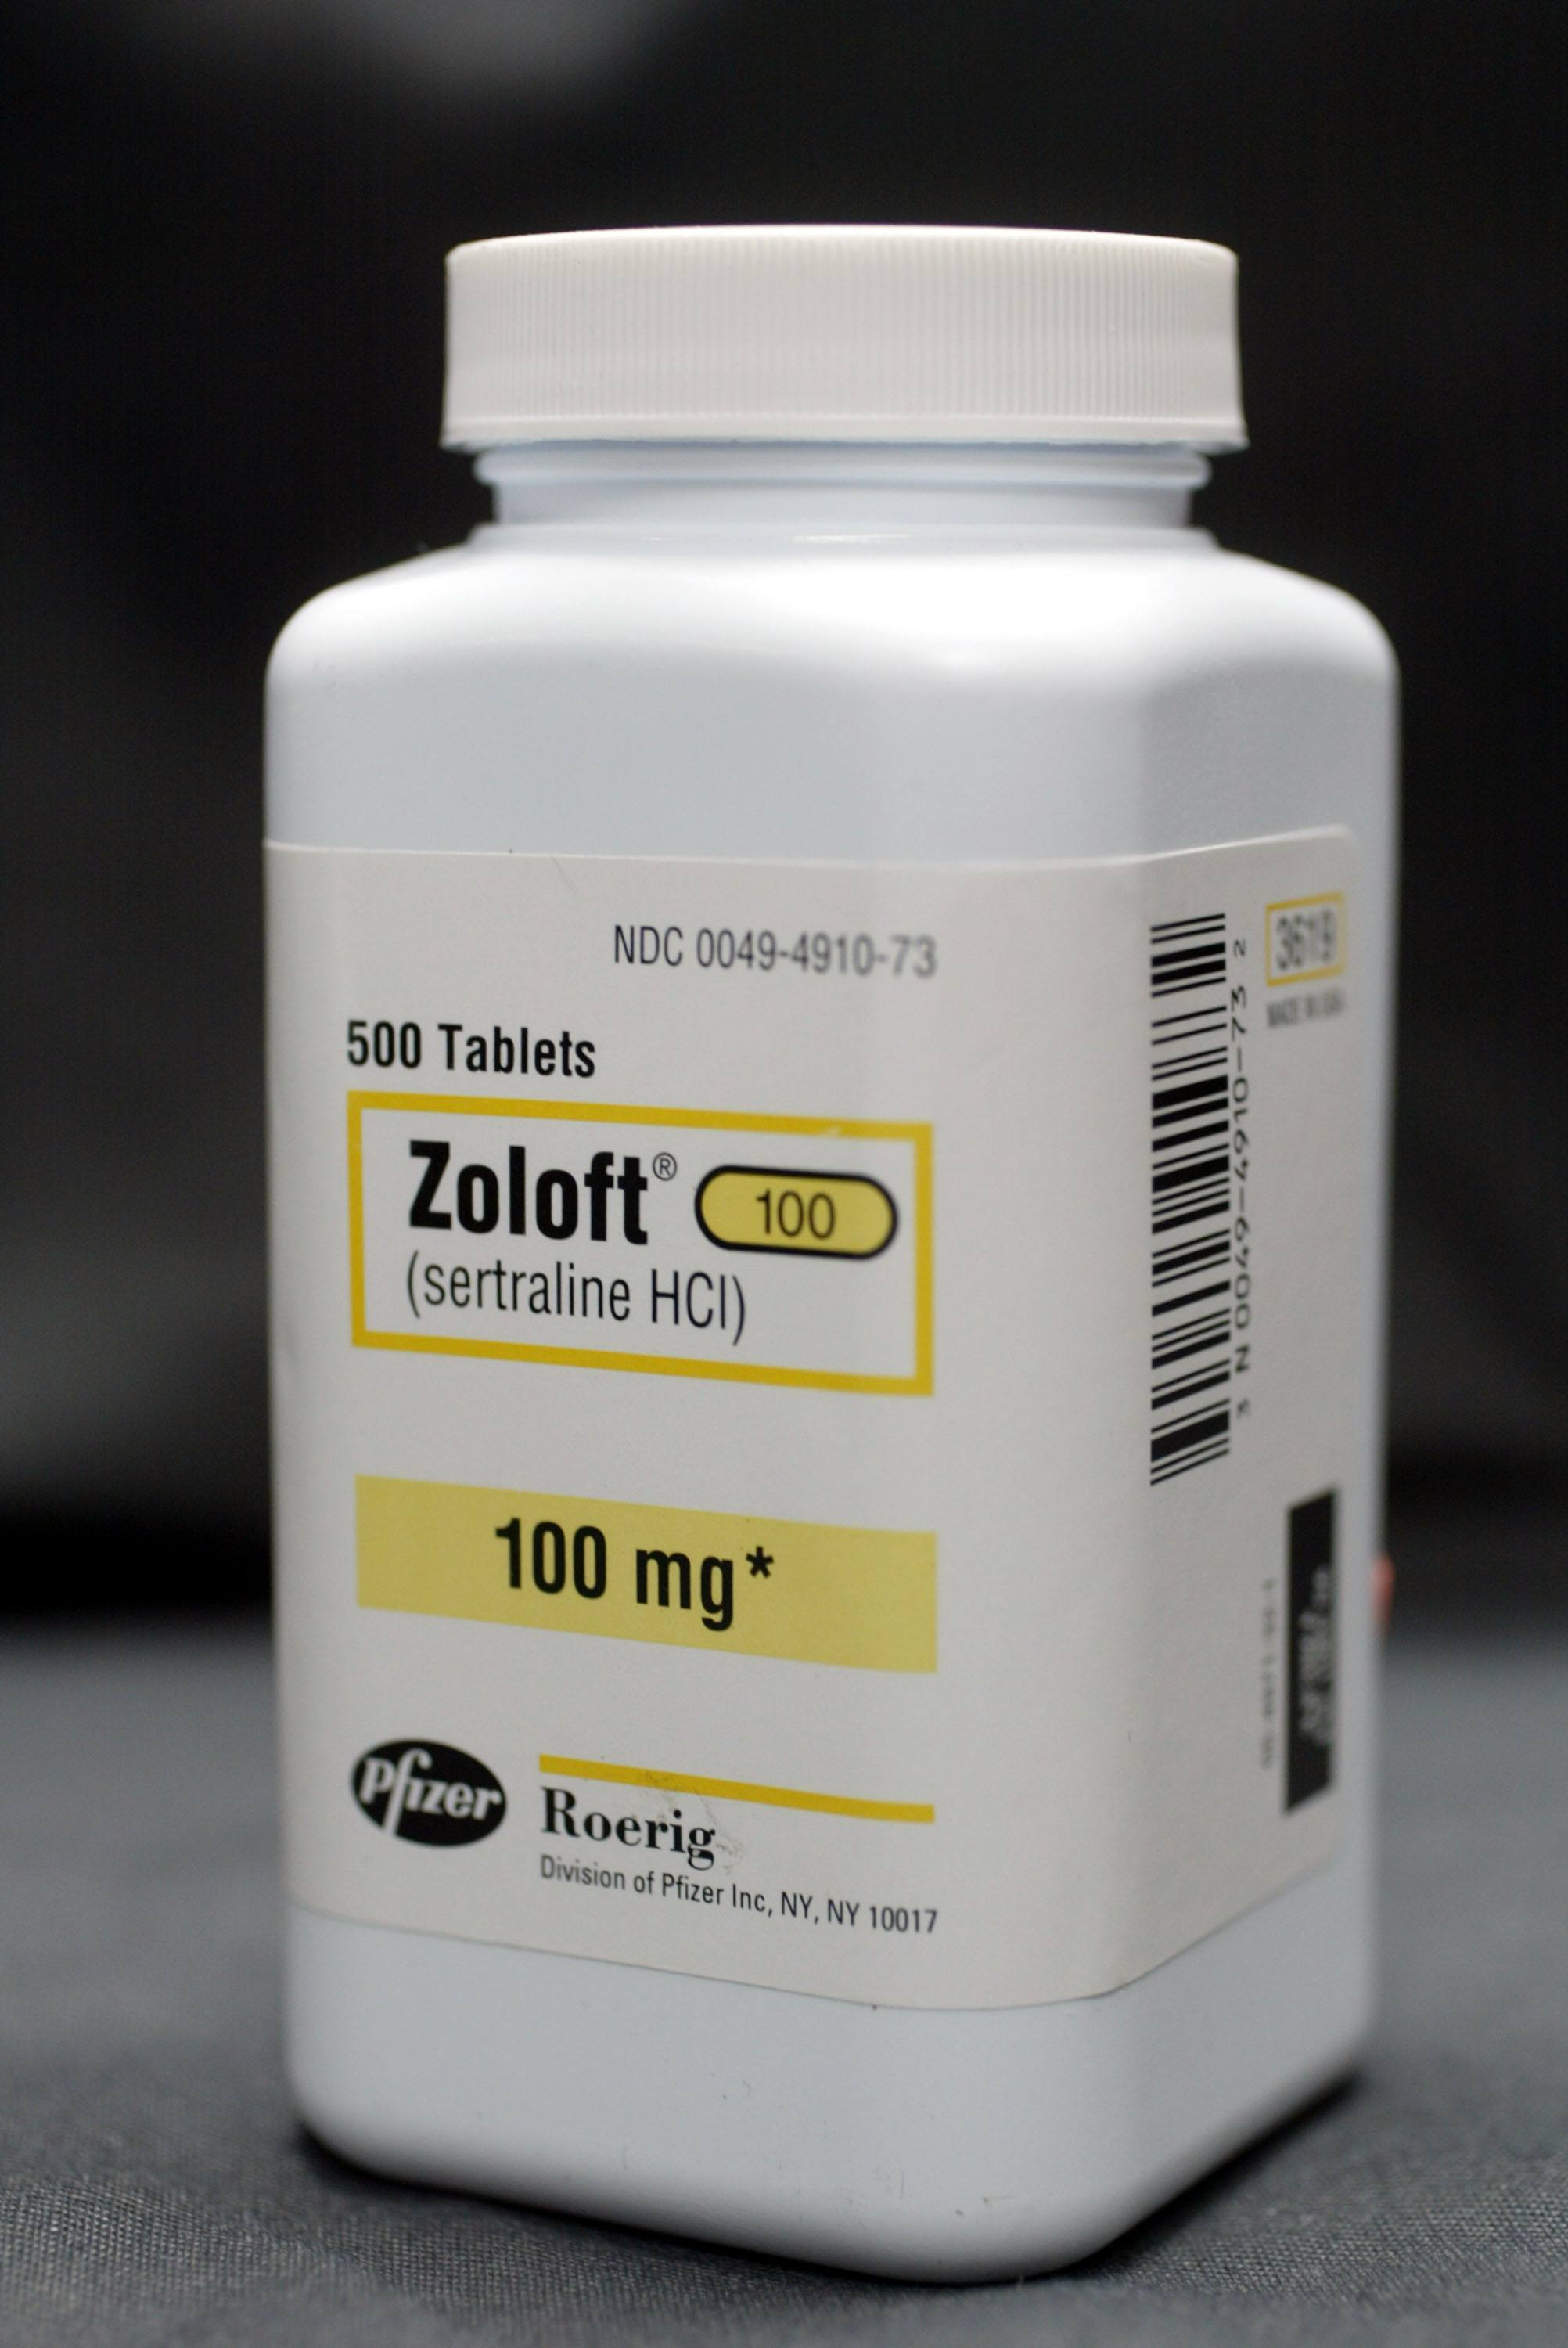 A bottle of Zoloft